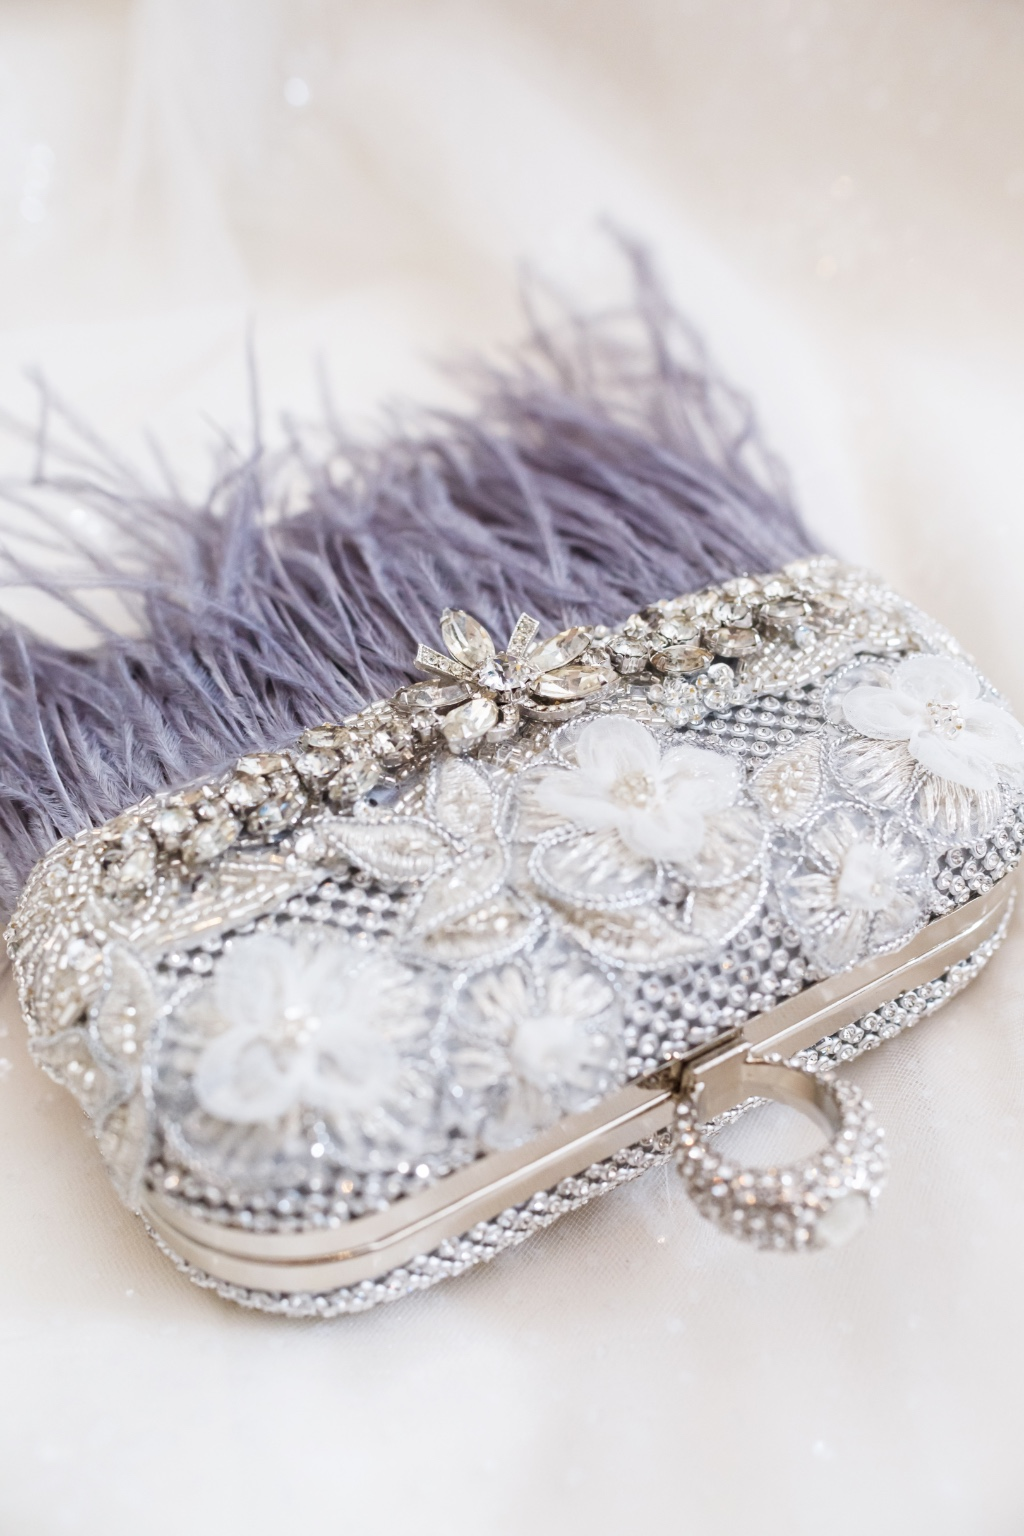 Bridal Clutches that give you that glamorous look